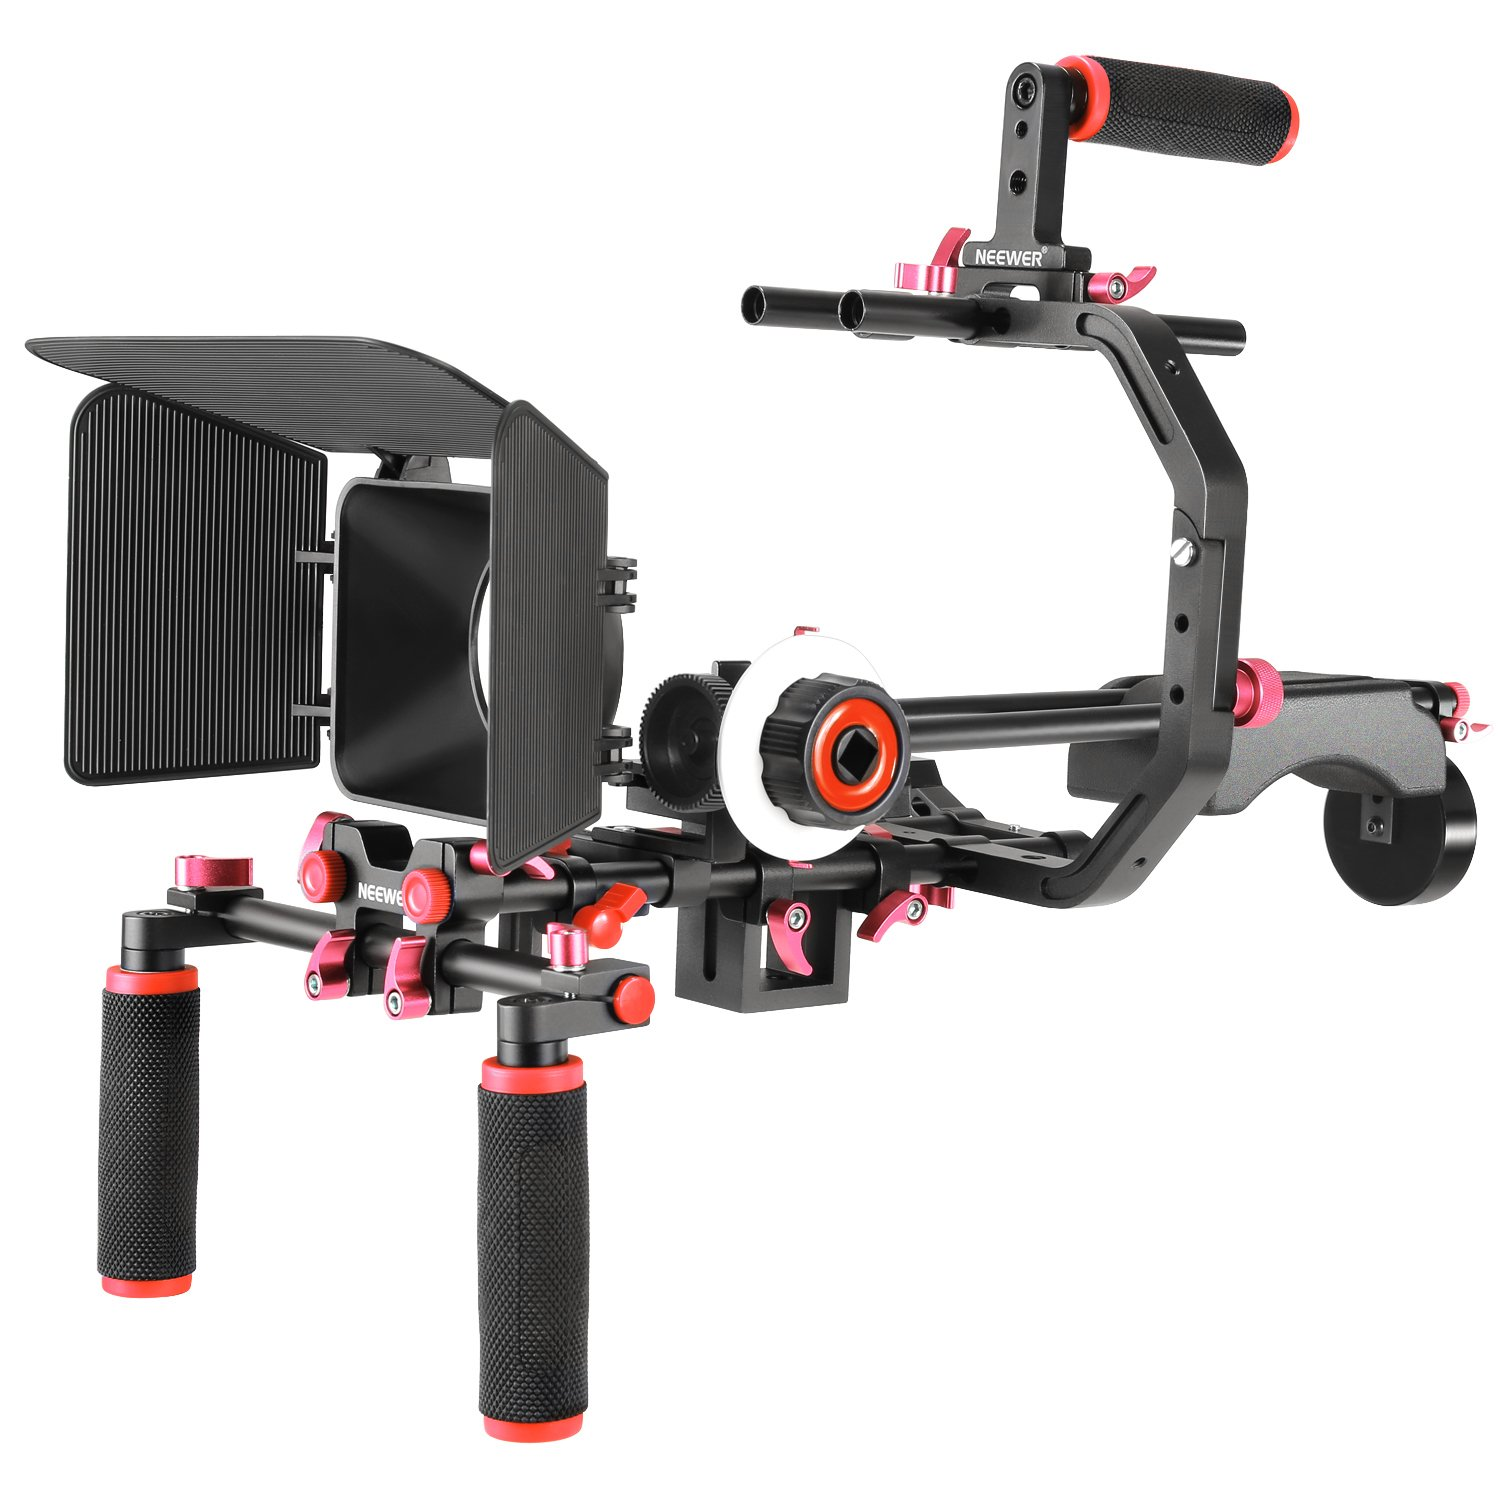 Neewer Film Movie Video Making System Kit for Canon Nikon Sony and Other DSLR Cameras Video Camcorders, Includes: C-Shaped Bracket,Handle Grip,15mm Rod,Matte Box,Follow Focus,Shoulder Rig (Red+Black) by Neewer